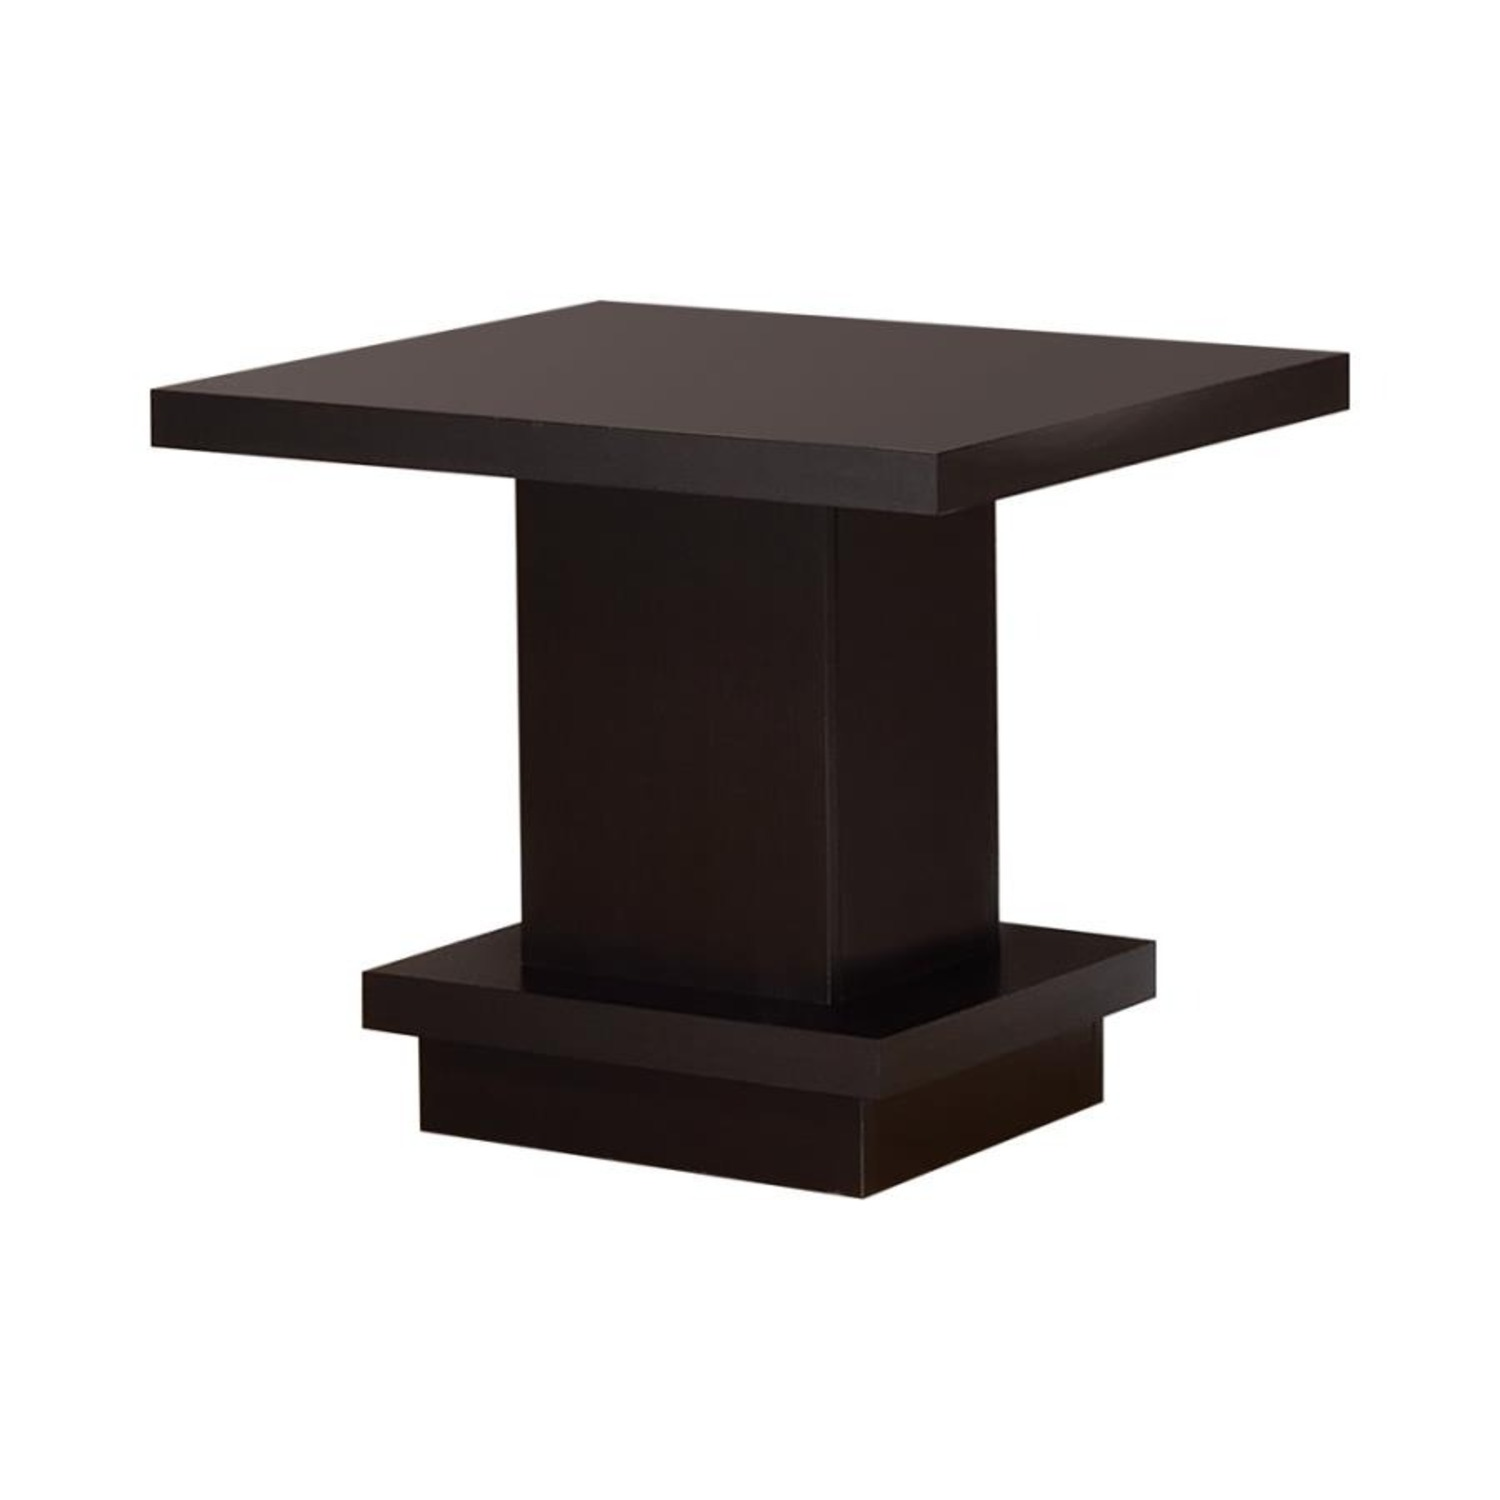 End Table In Warm Cappuccino Finish - image-0